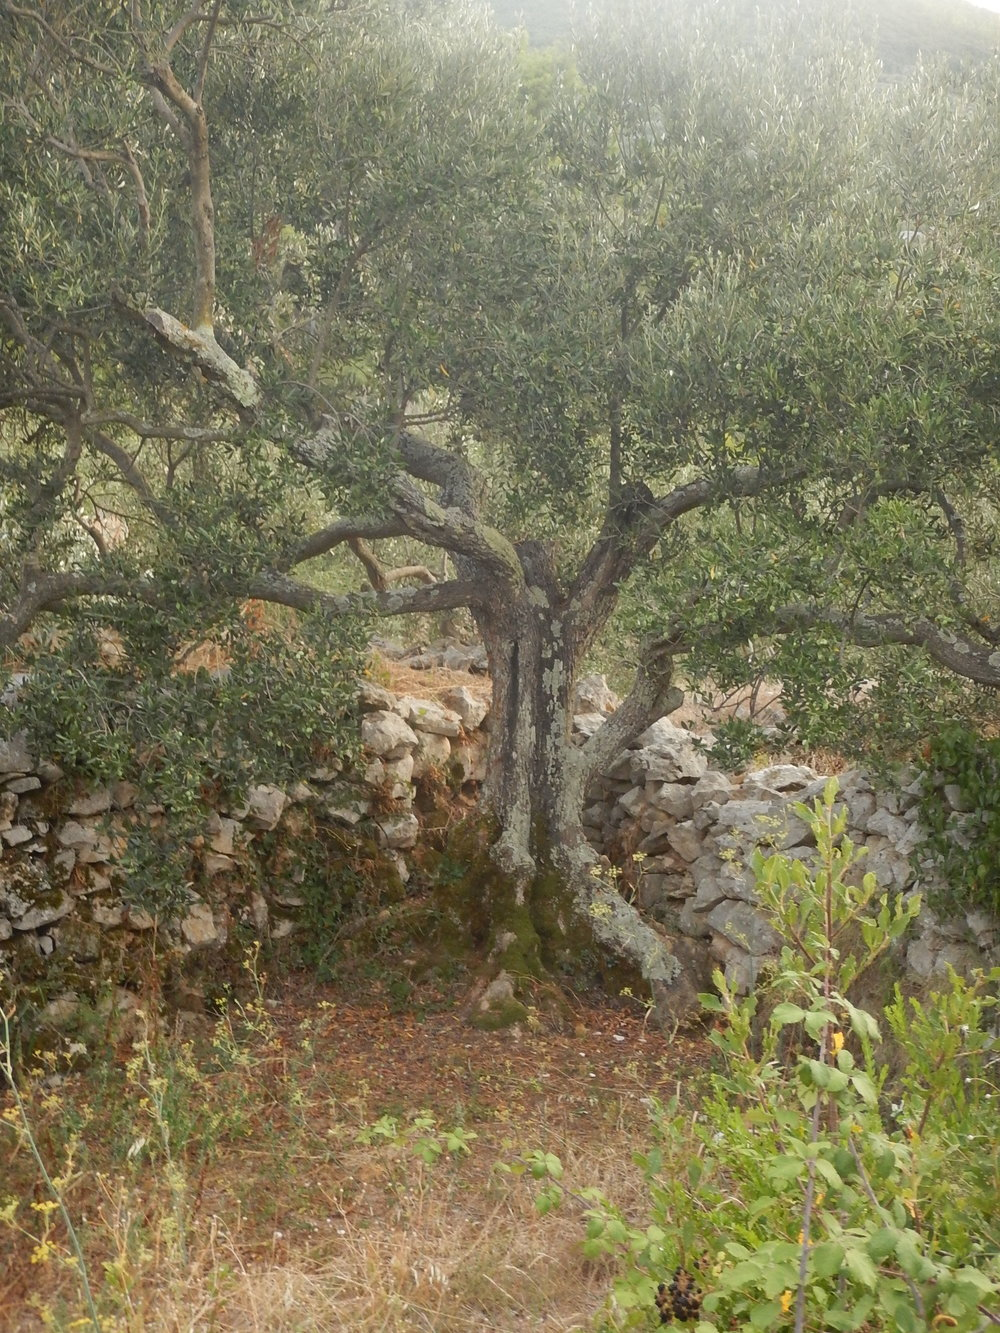 And olive tree